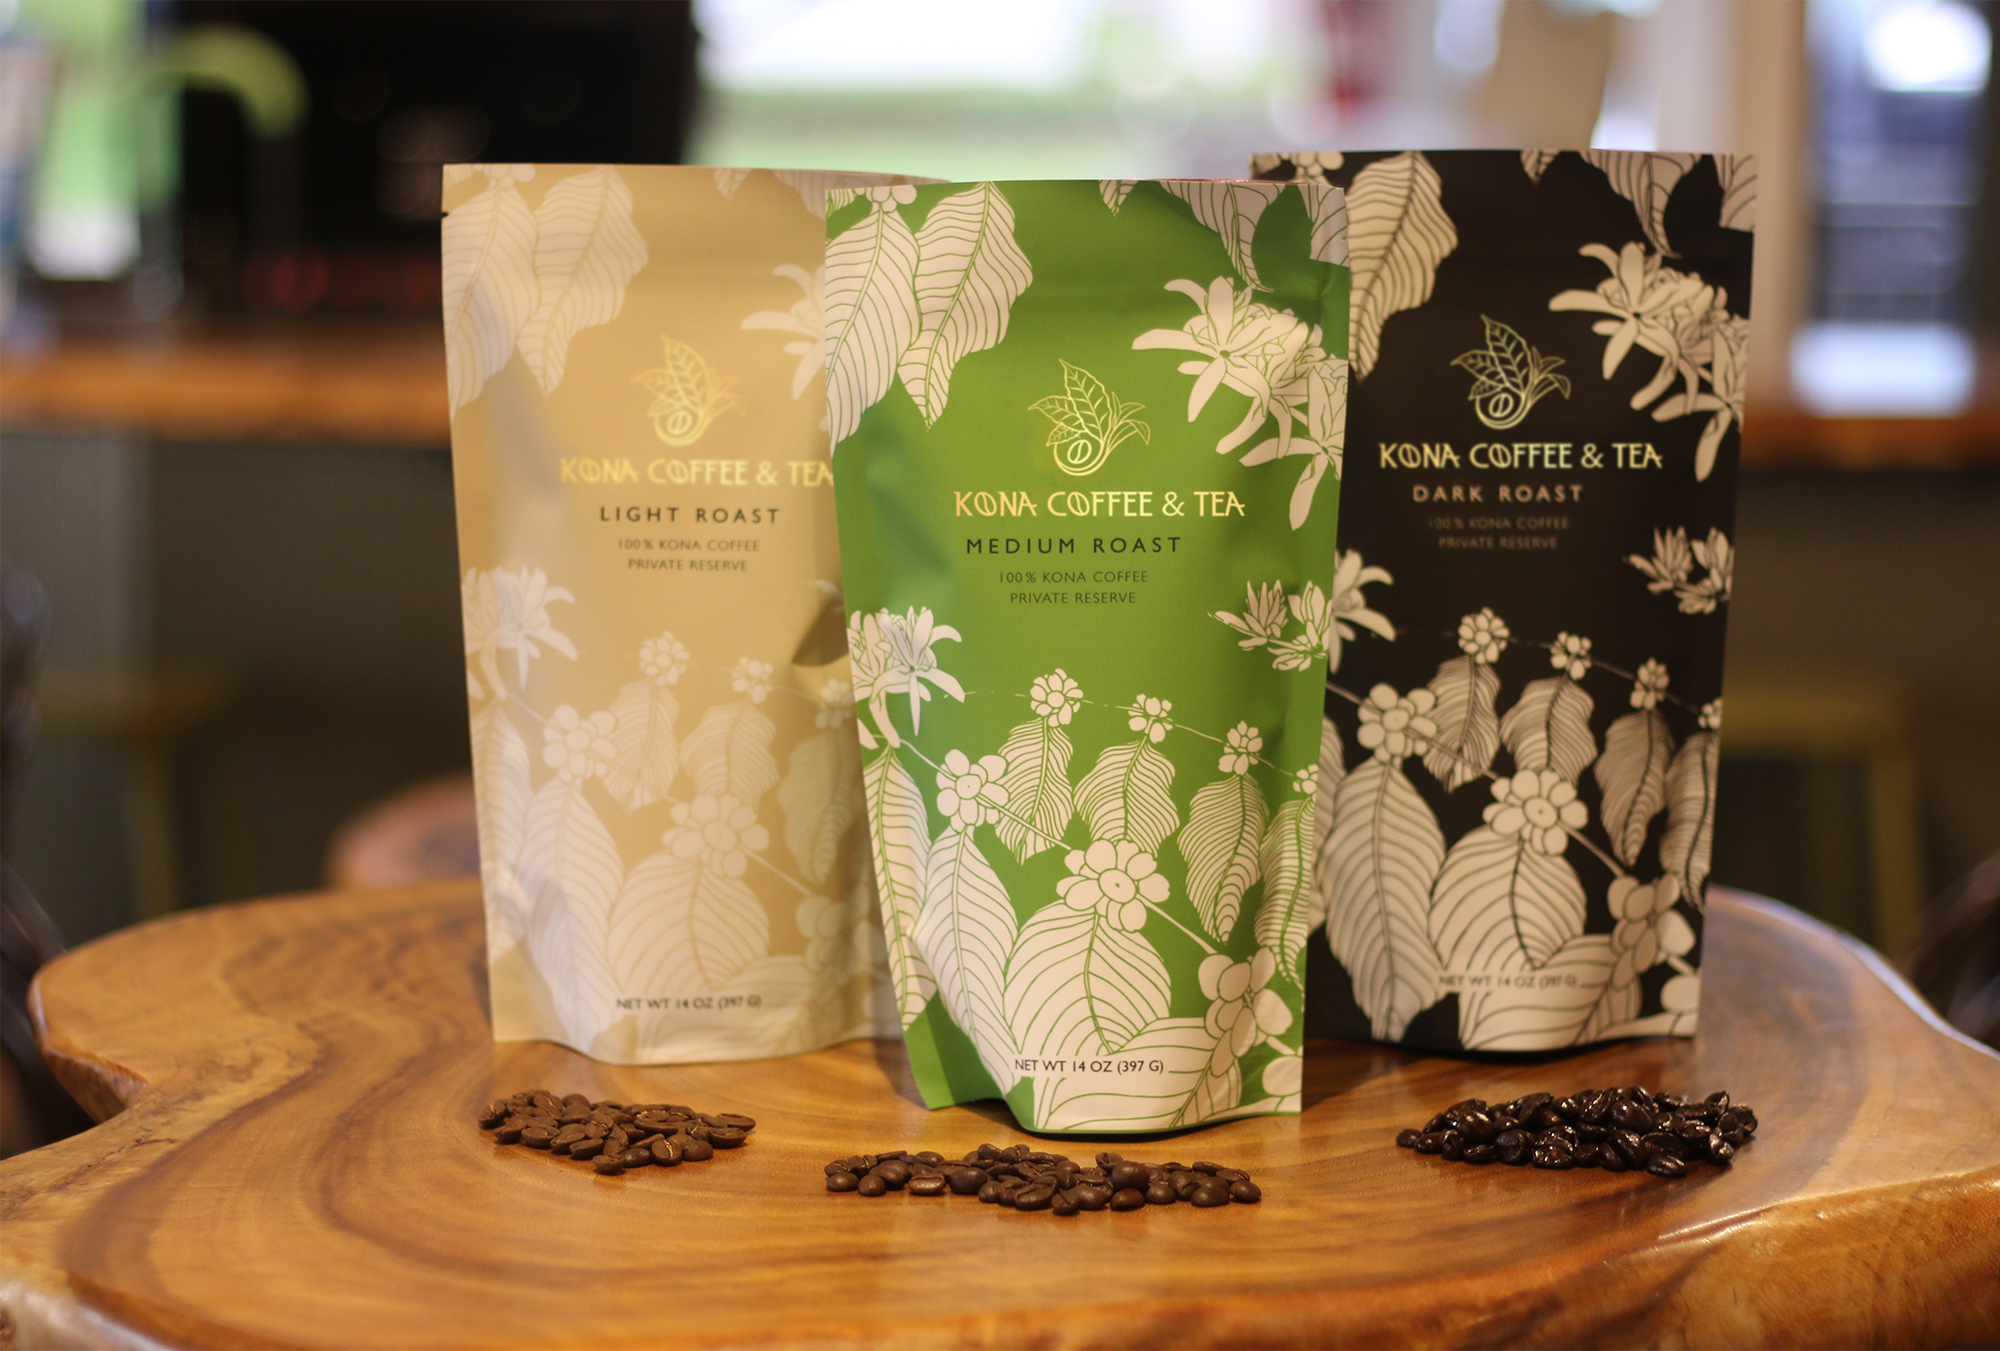 Kona Coffee and Tea 100% Kona Coffee